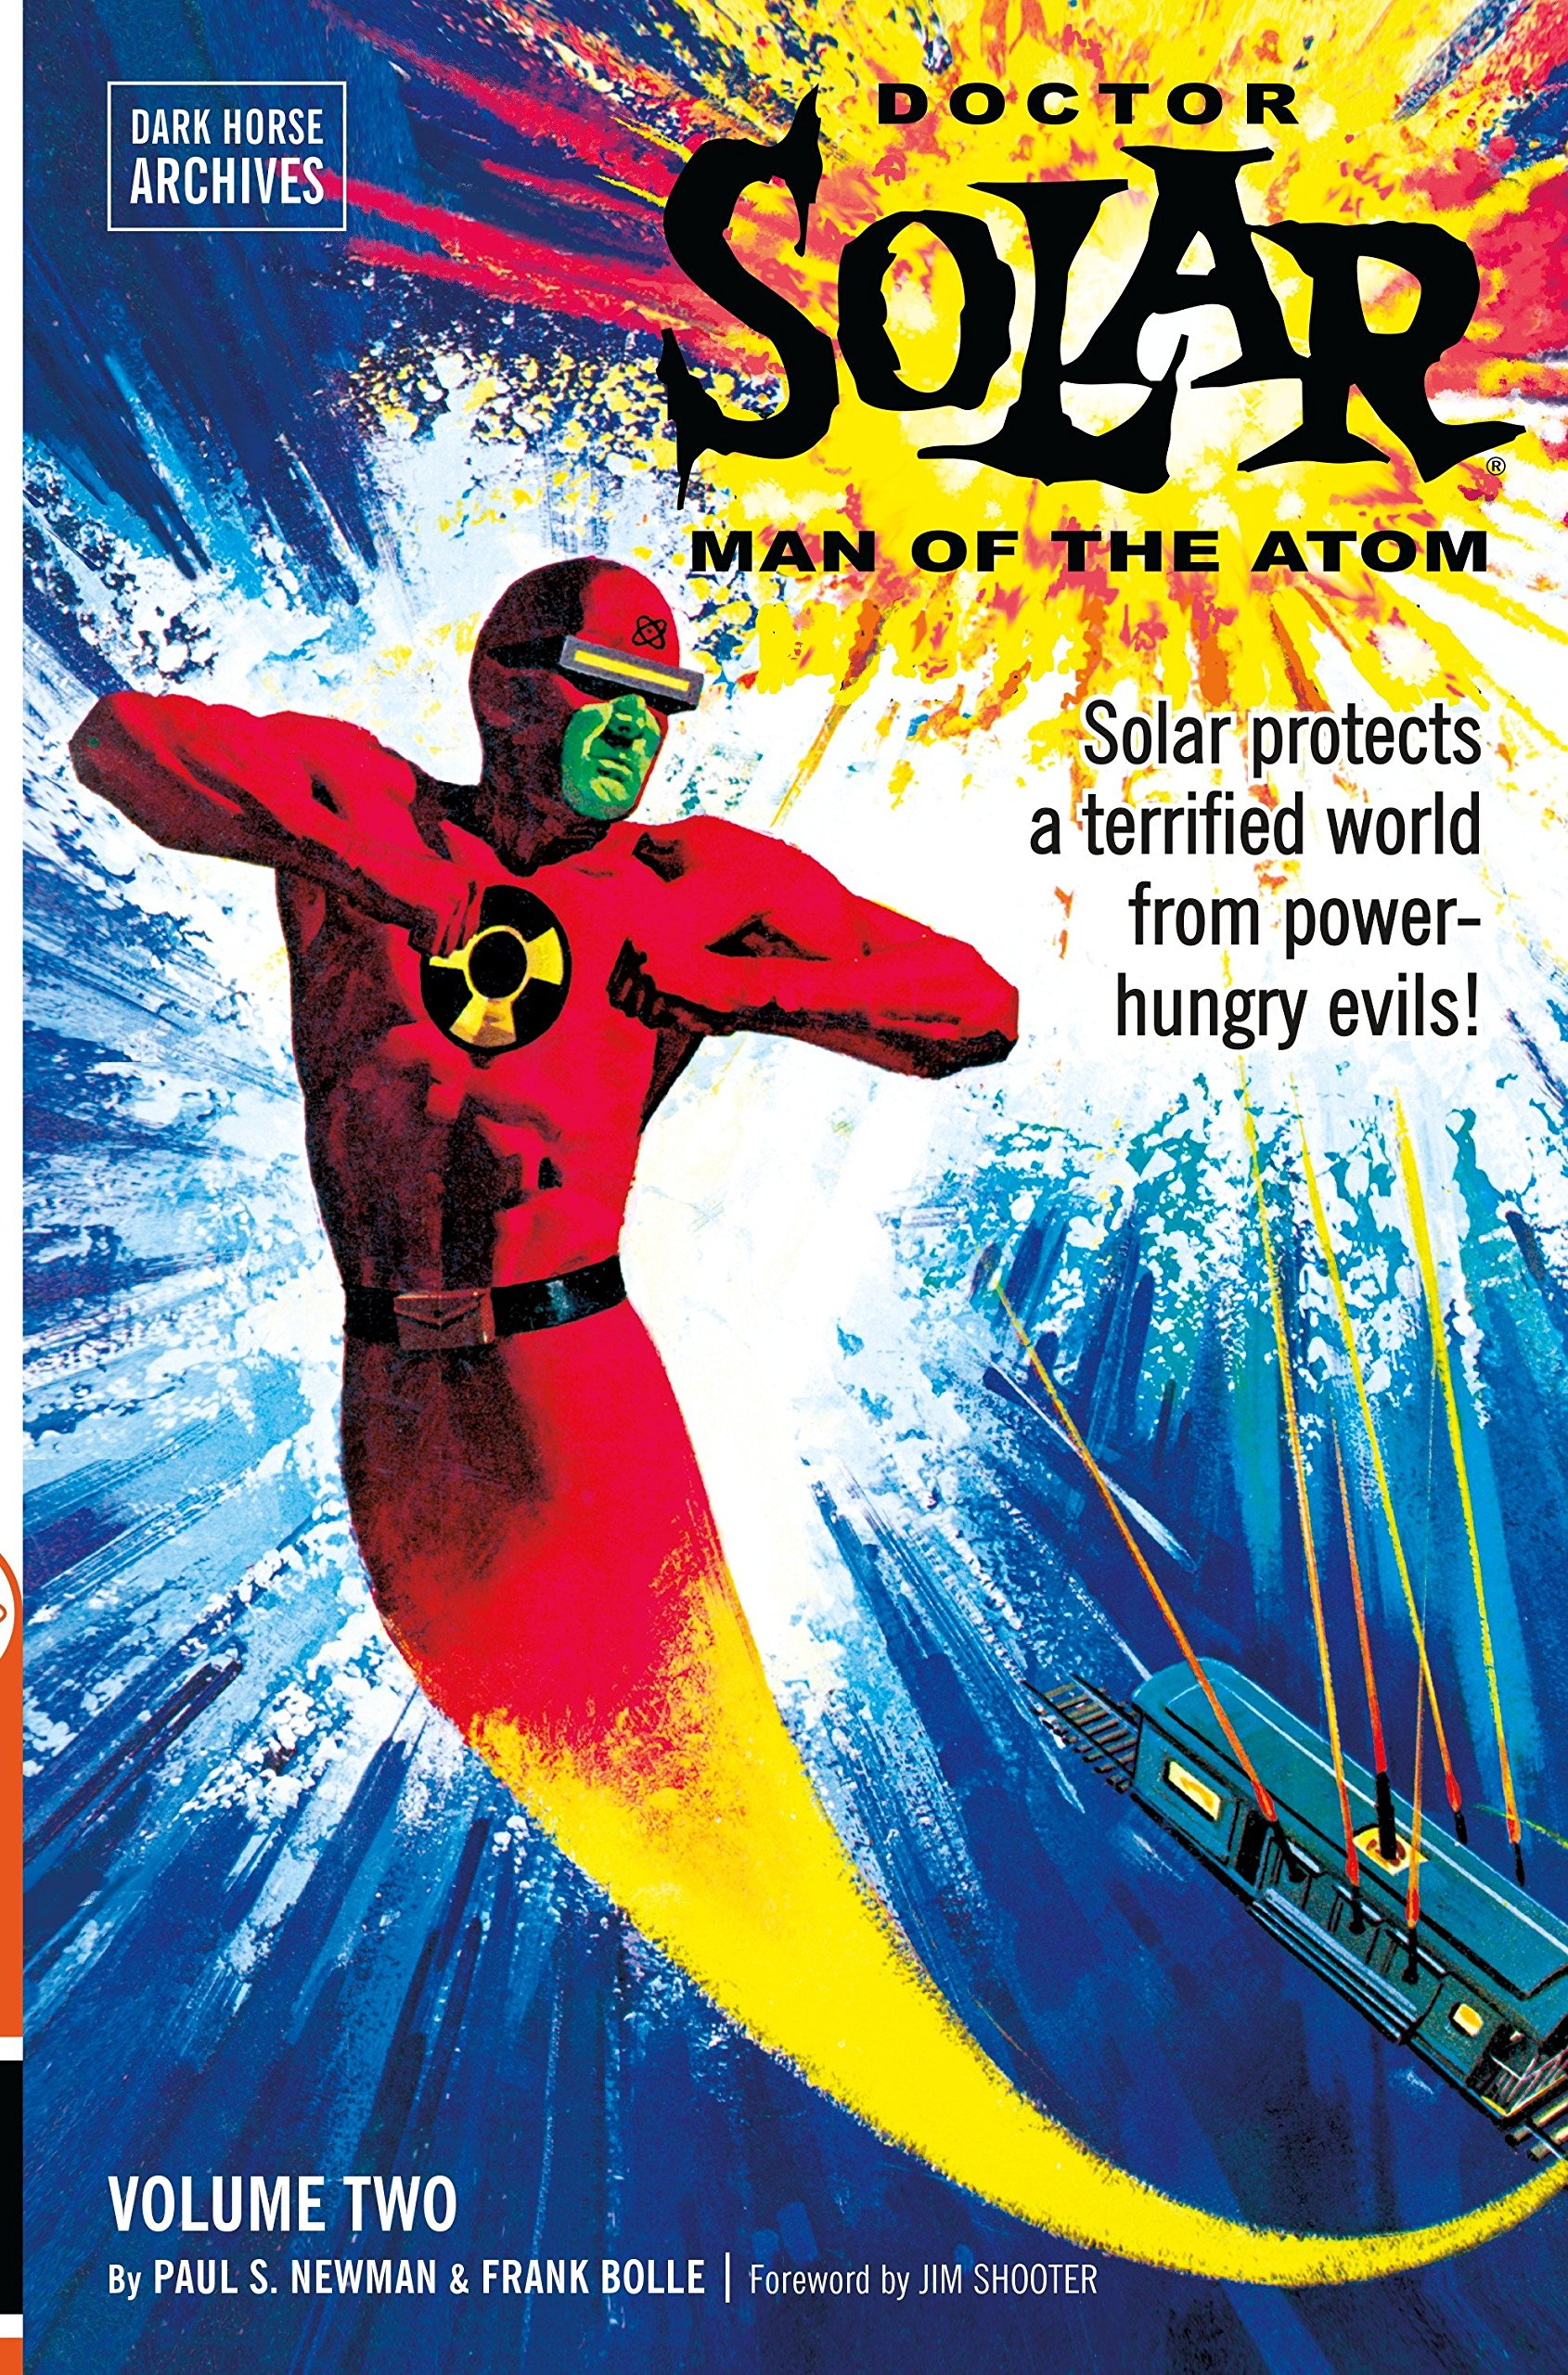 Doctor Solar, Man of the Atom Archives Volume 2 by Dark Horse Books